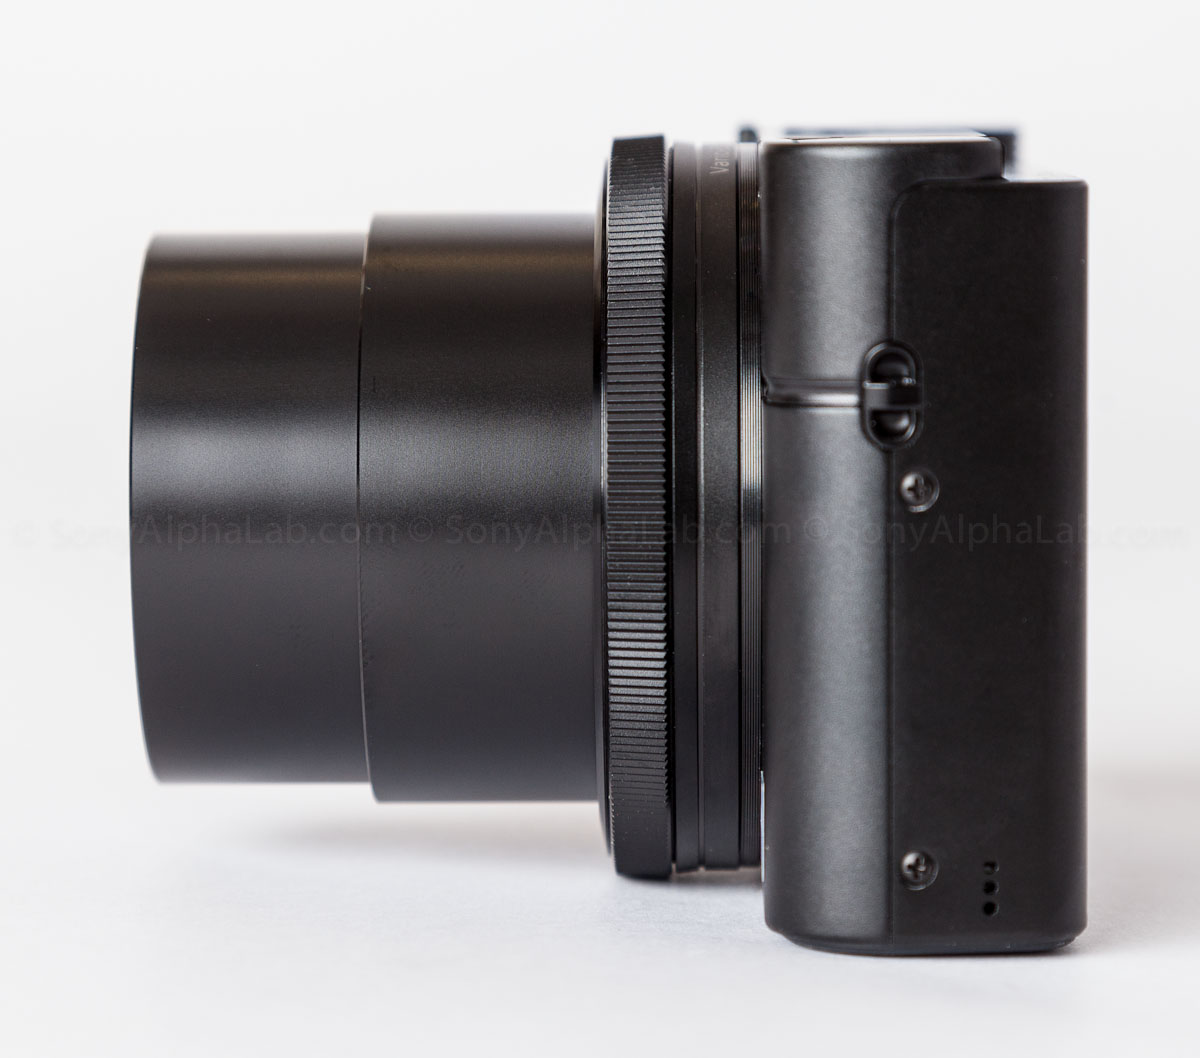 Sony Rx100 - Lens Out